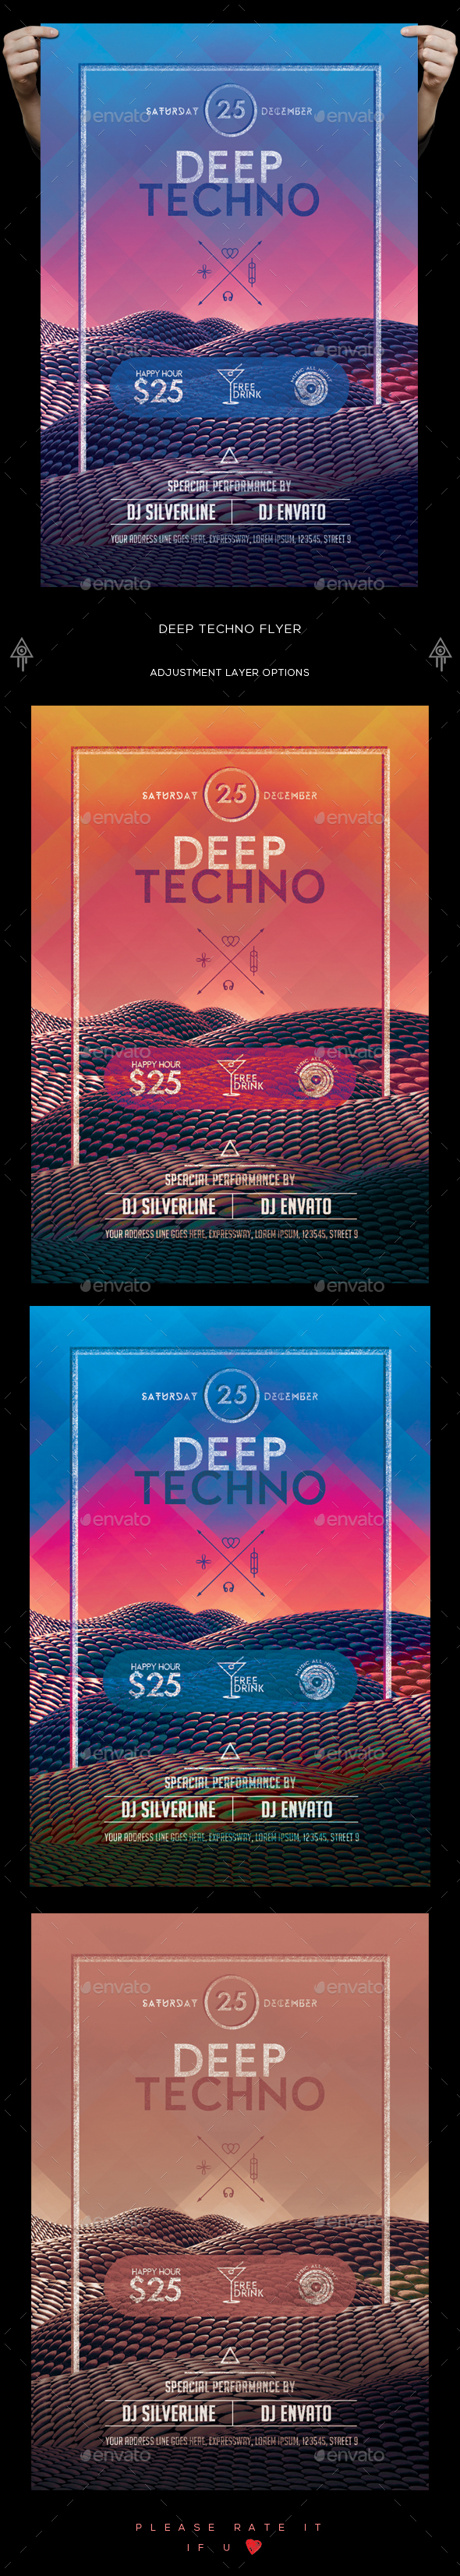 Deep Techno Flyer - Clubs & Parties Events